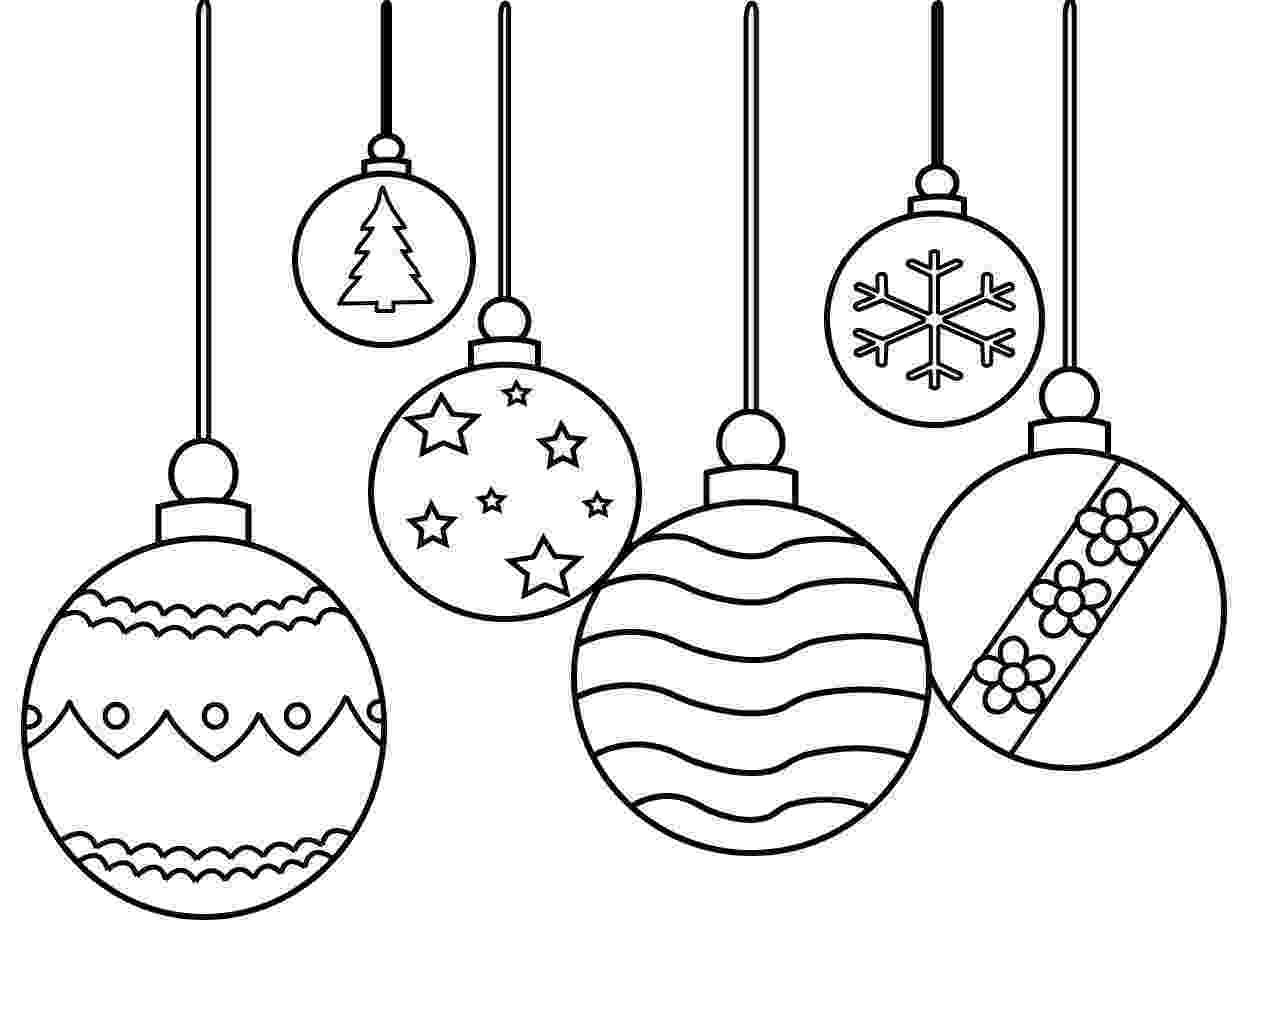 ornaments coloring pages christmas ornaments colouring pages stock illustration pages coloring ornaments